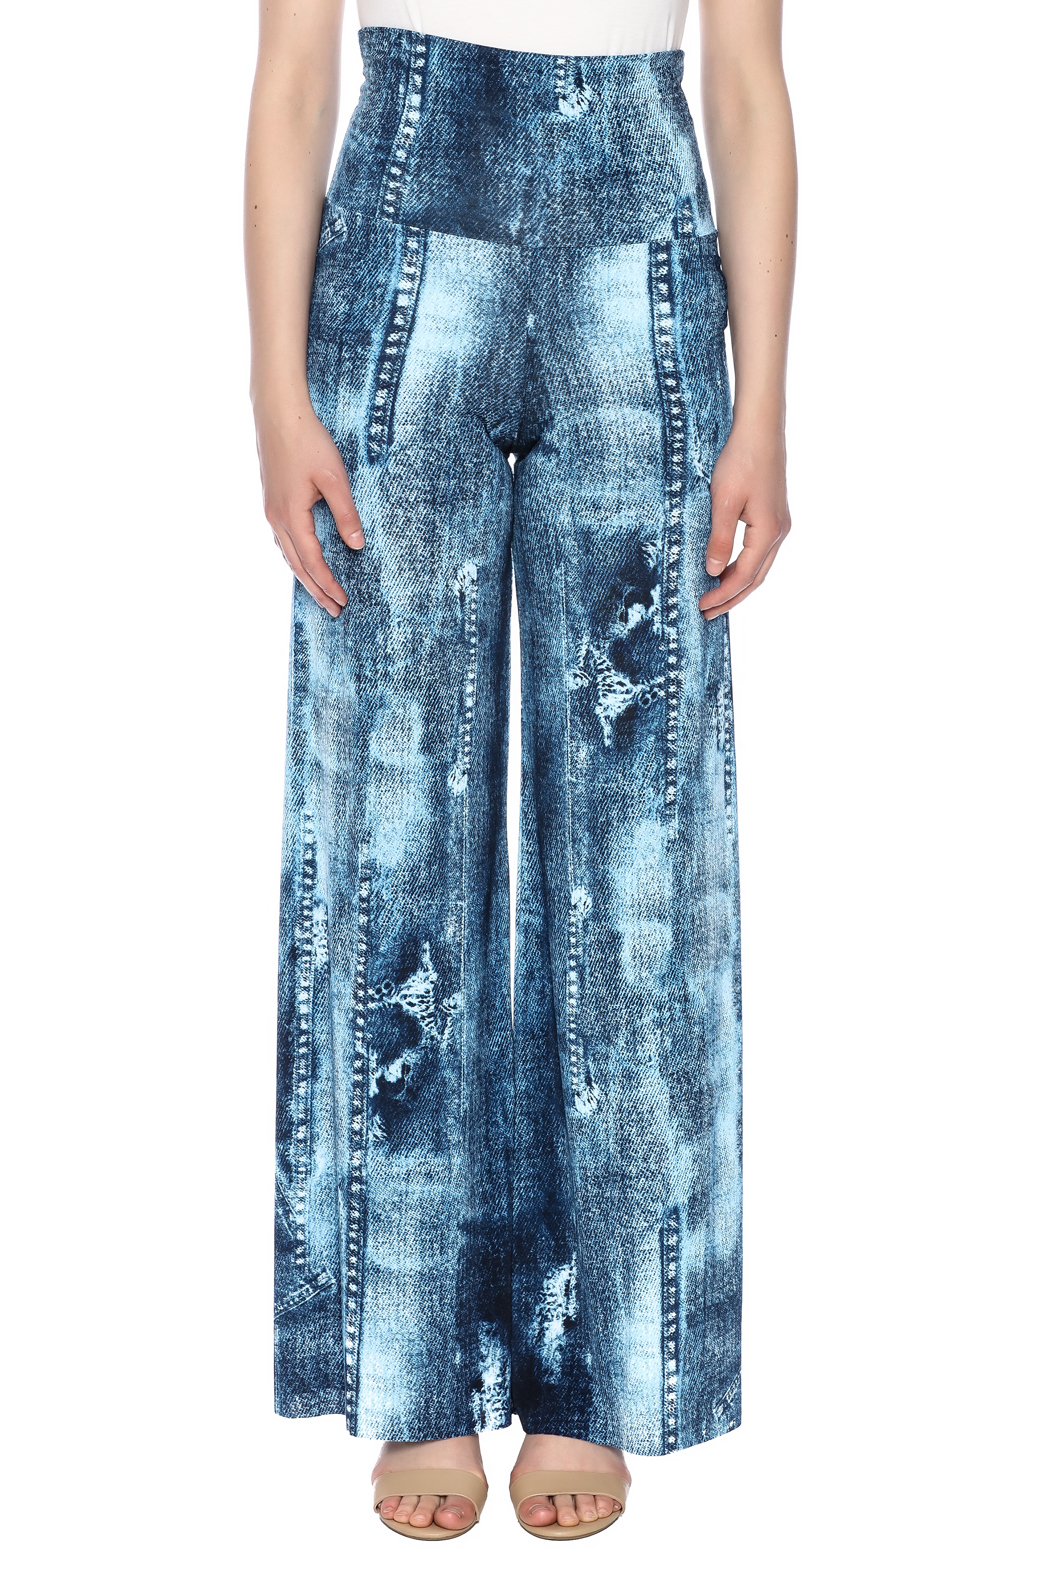 Crystal Art Designs Denim Palazzo Pants - Side Cropped Image